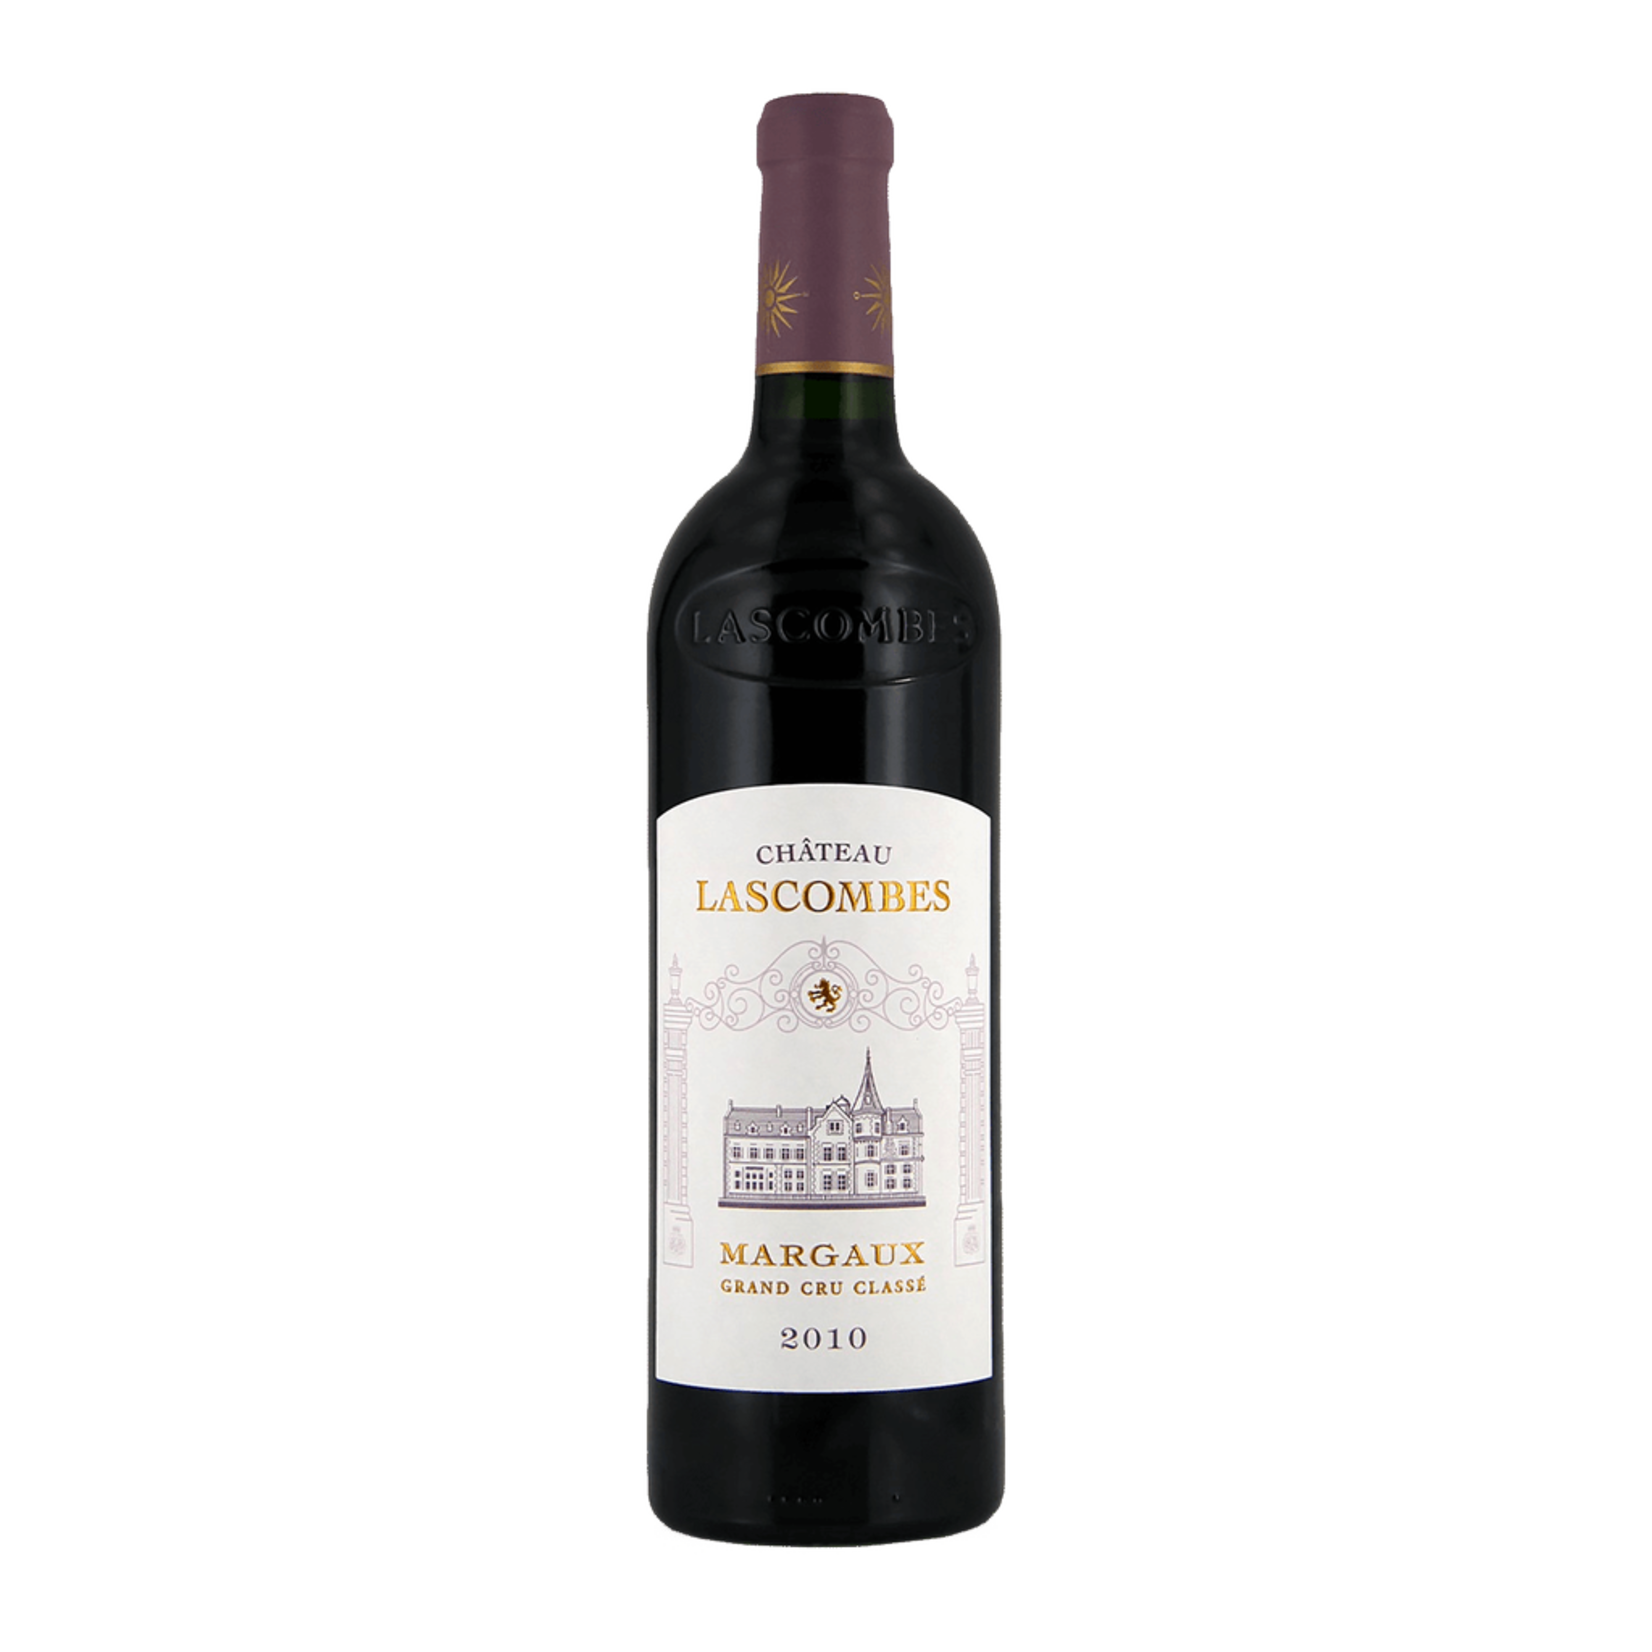 Wine Chateau Lascombes Margaux 2010